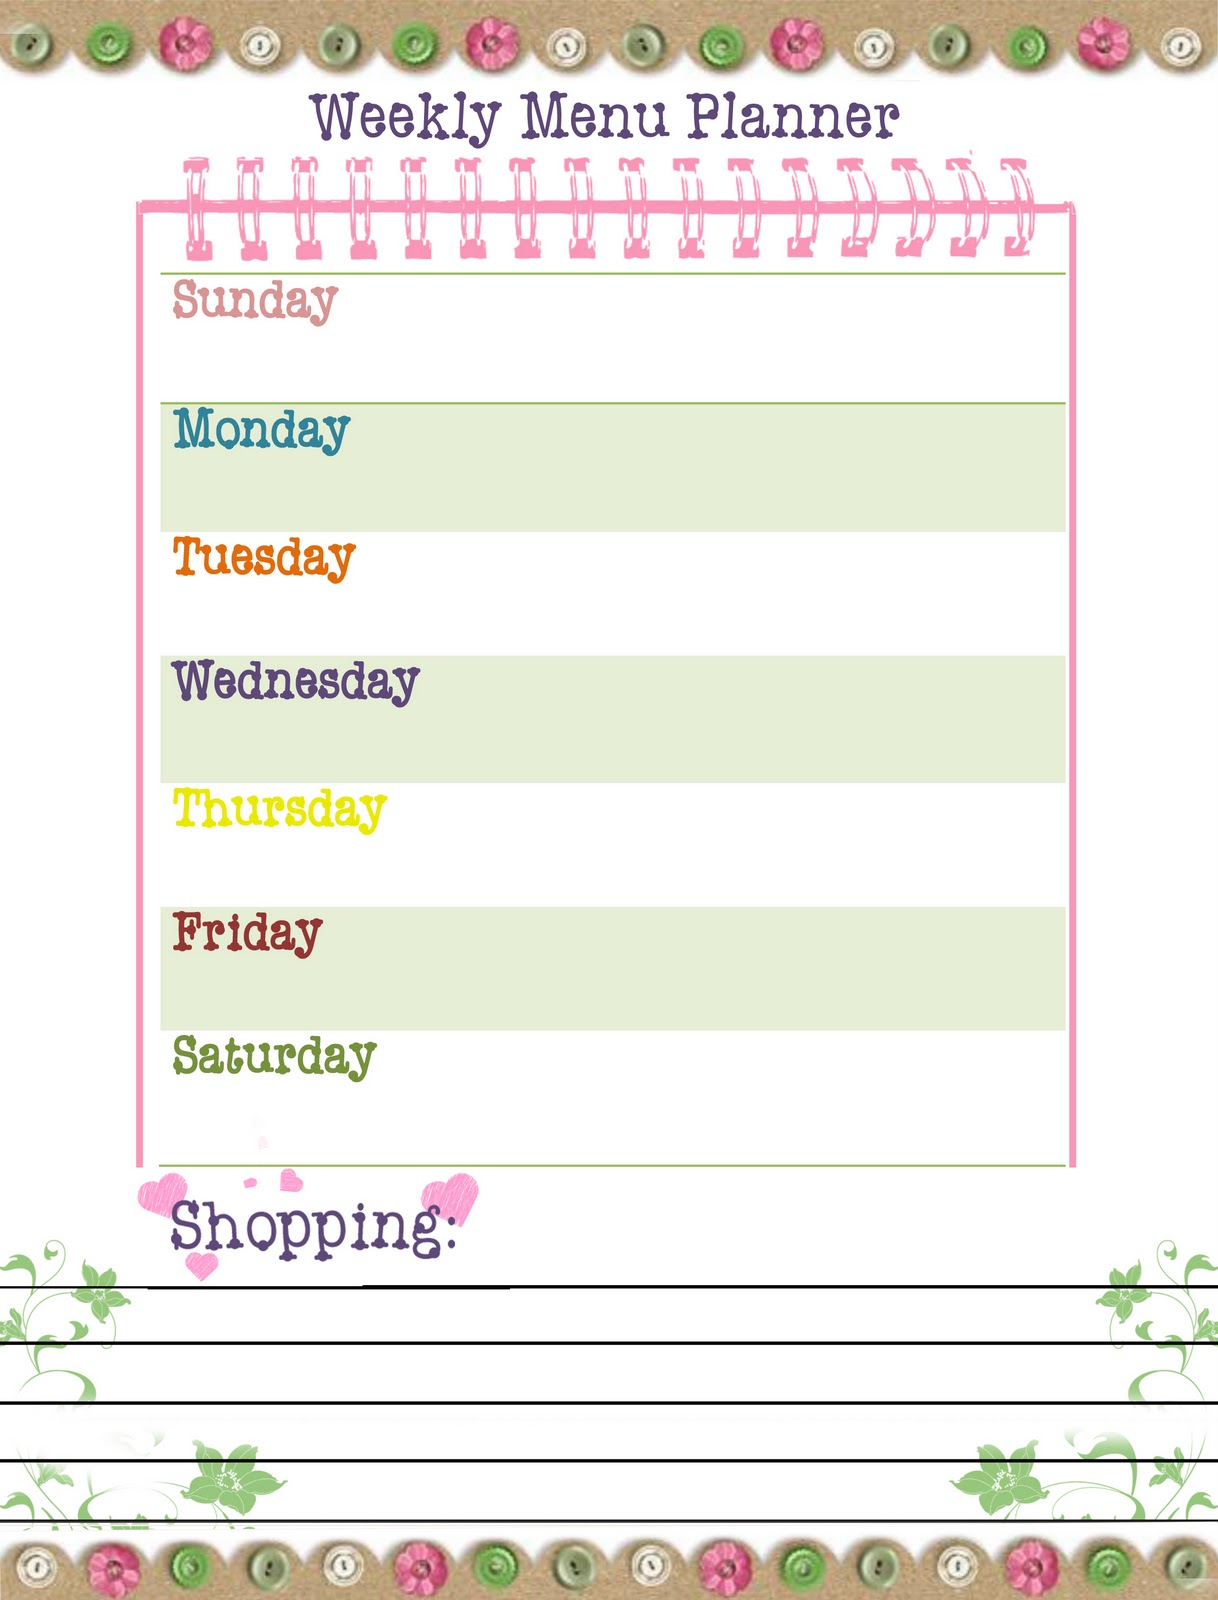 This is an image of Impeccable Printable Weekly Menu